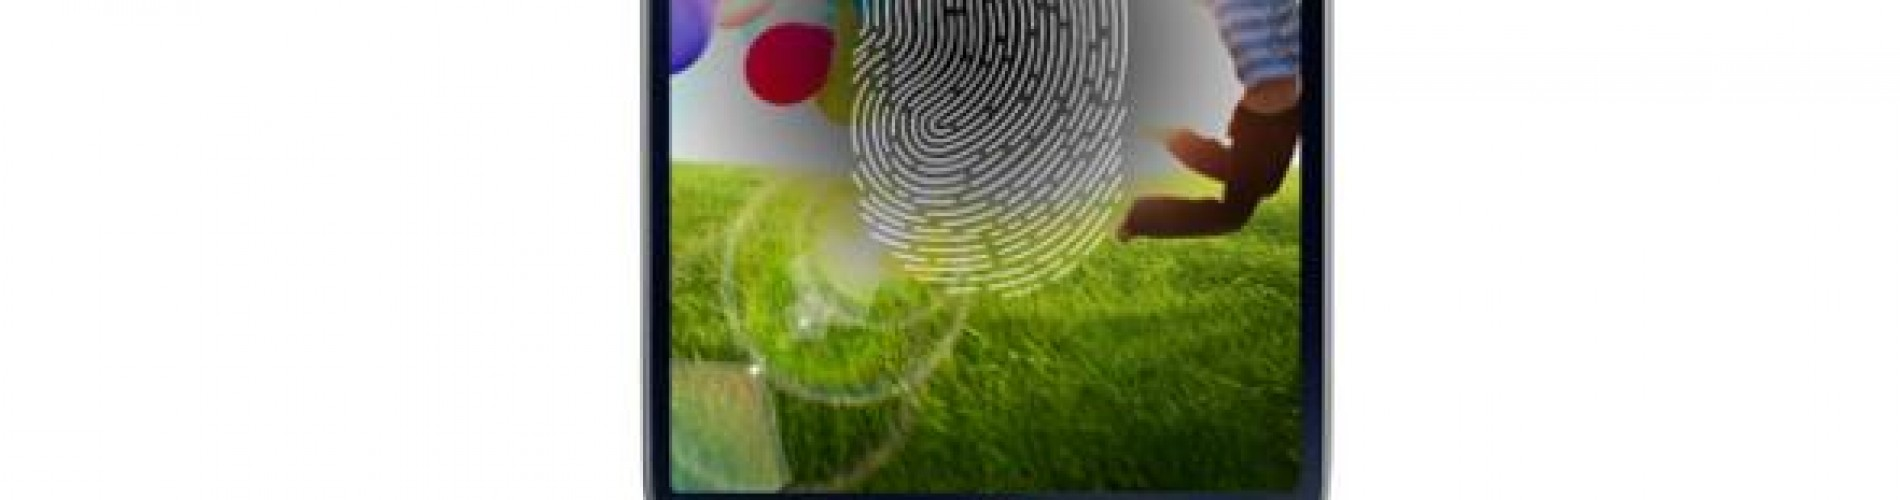 Google will standardize fingerprint readers in Android M